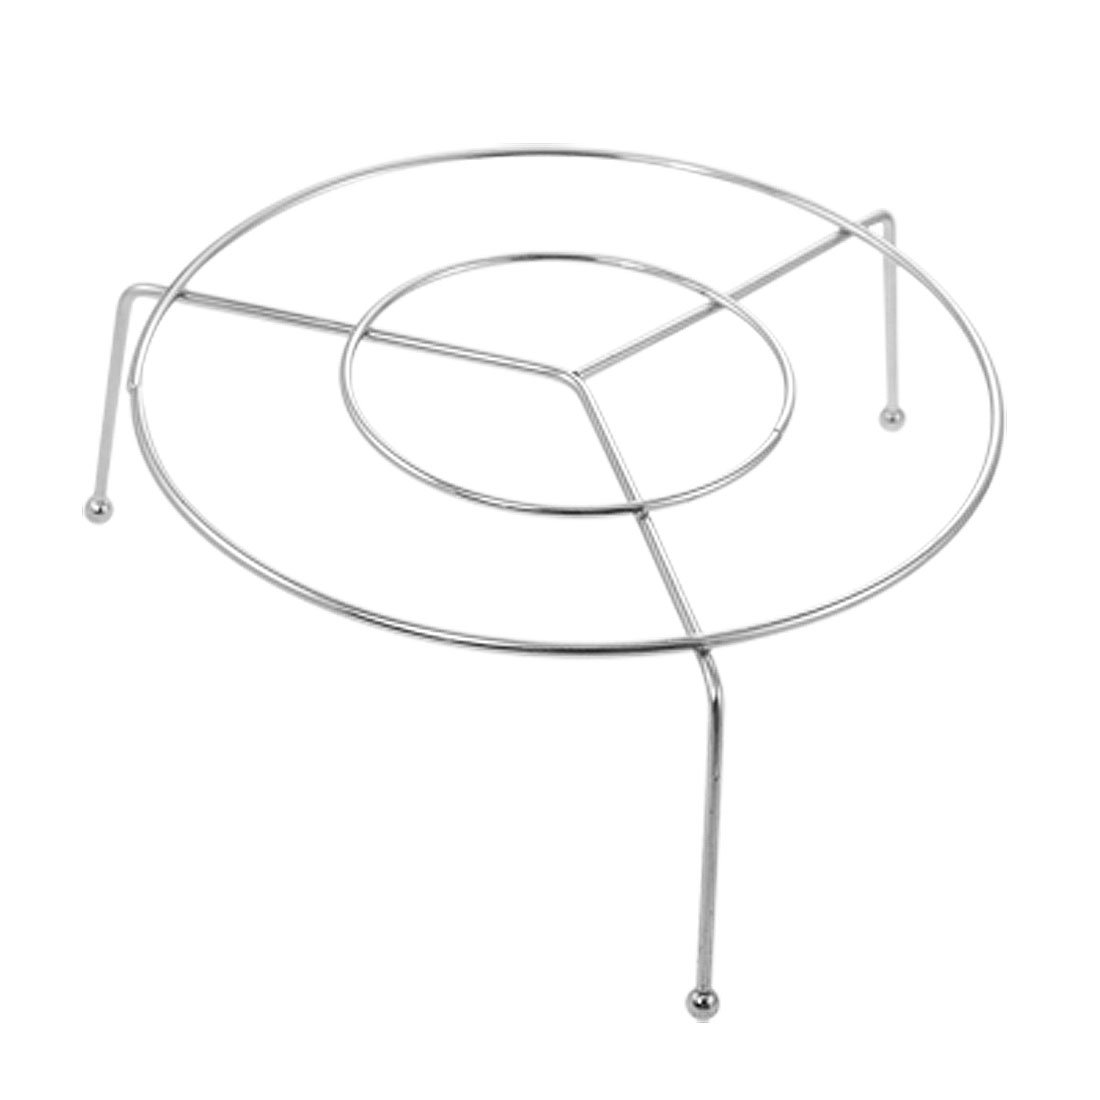 HGHO-New 13.5cm Stainless Steel Wire Steamer Rack Food Steaming Stand 0 8mm 304 stainless steel wire bright surface diy materialhard steel wire cold rolled